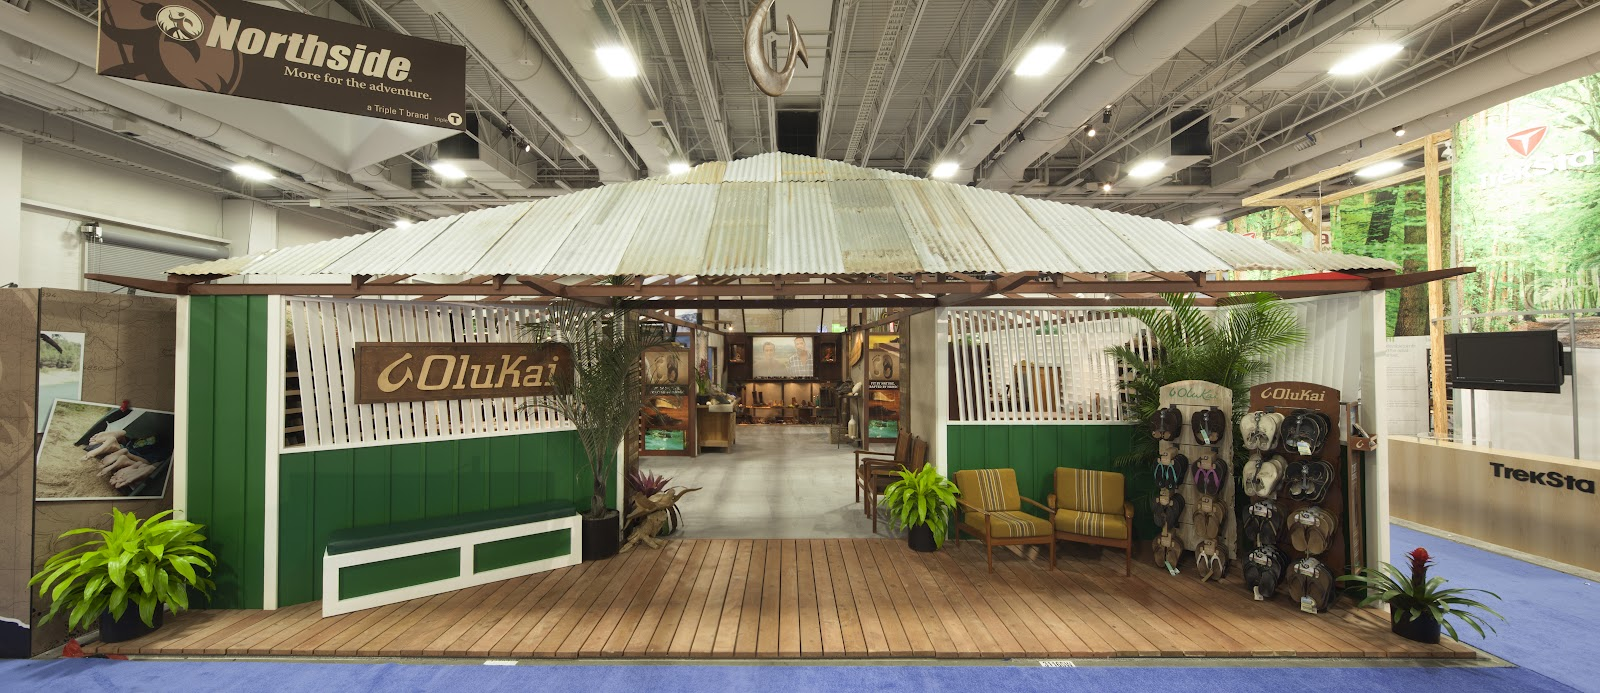 Trade Show Art Festival On Pinterest Pallets Surf And